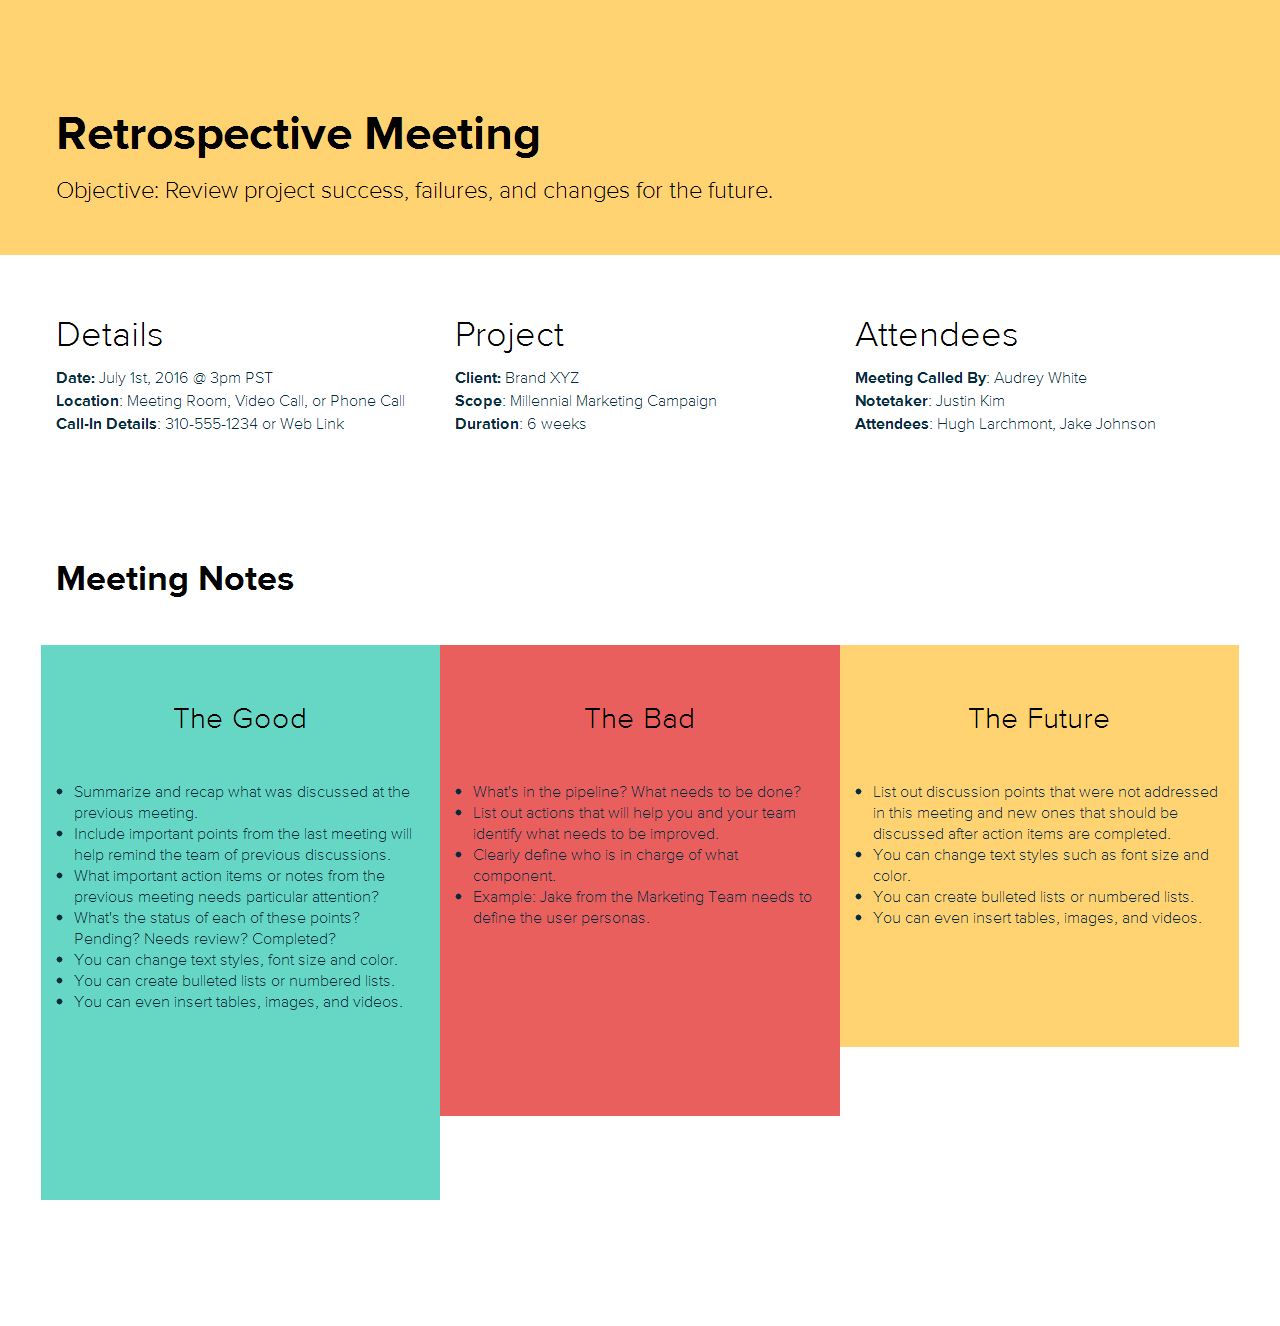 How to create a meeting agenda xtensio retro meeting agenda sample by xtensio maxwellsz